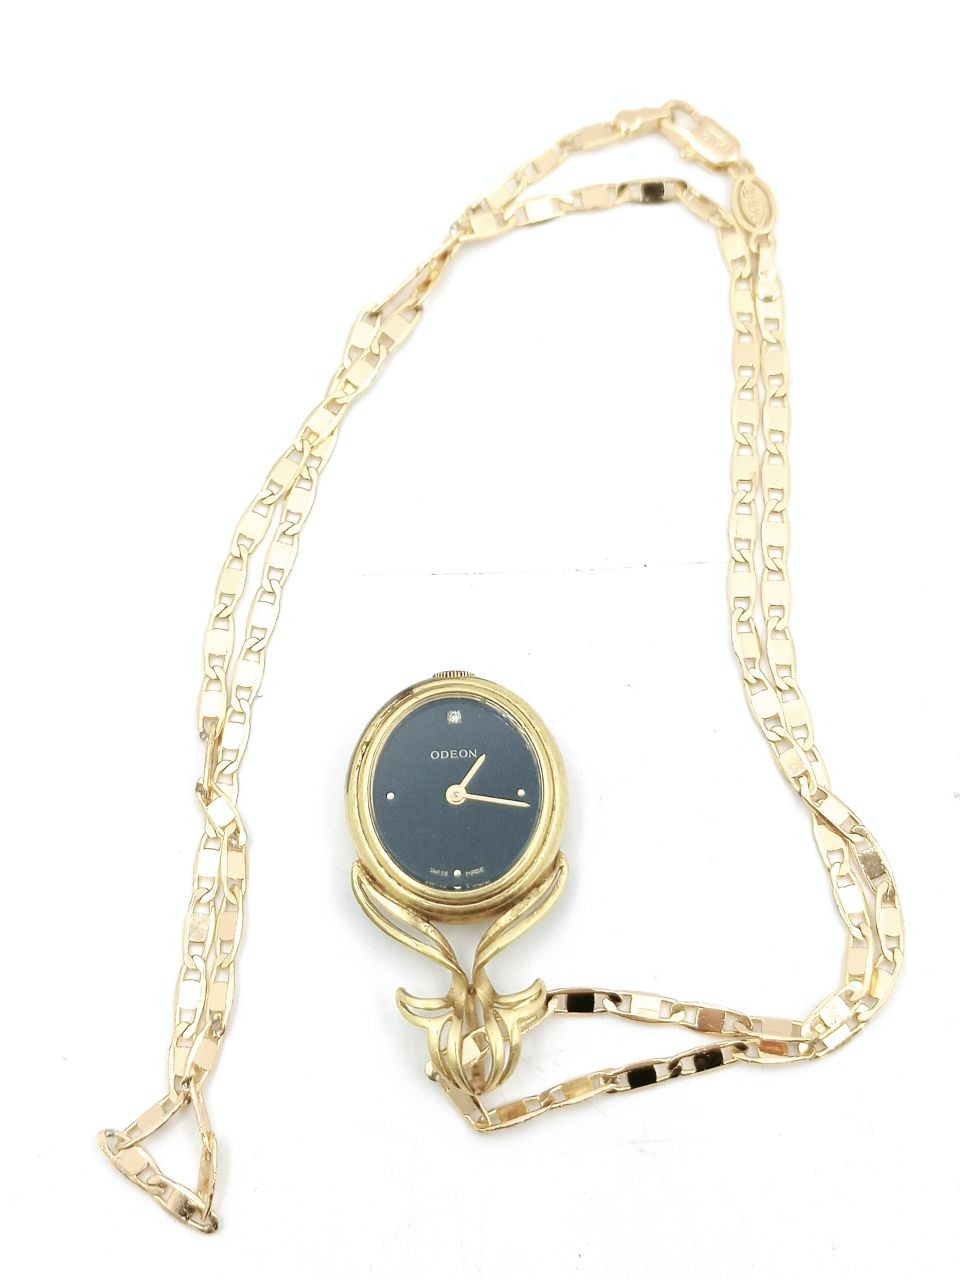 ODEON GOLD PLATED POCKET WATCH